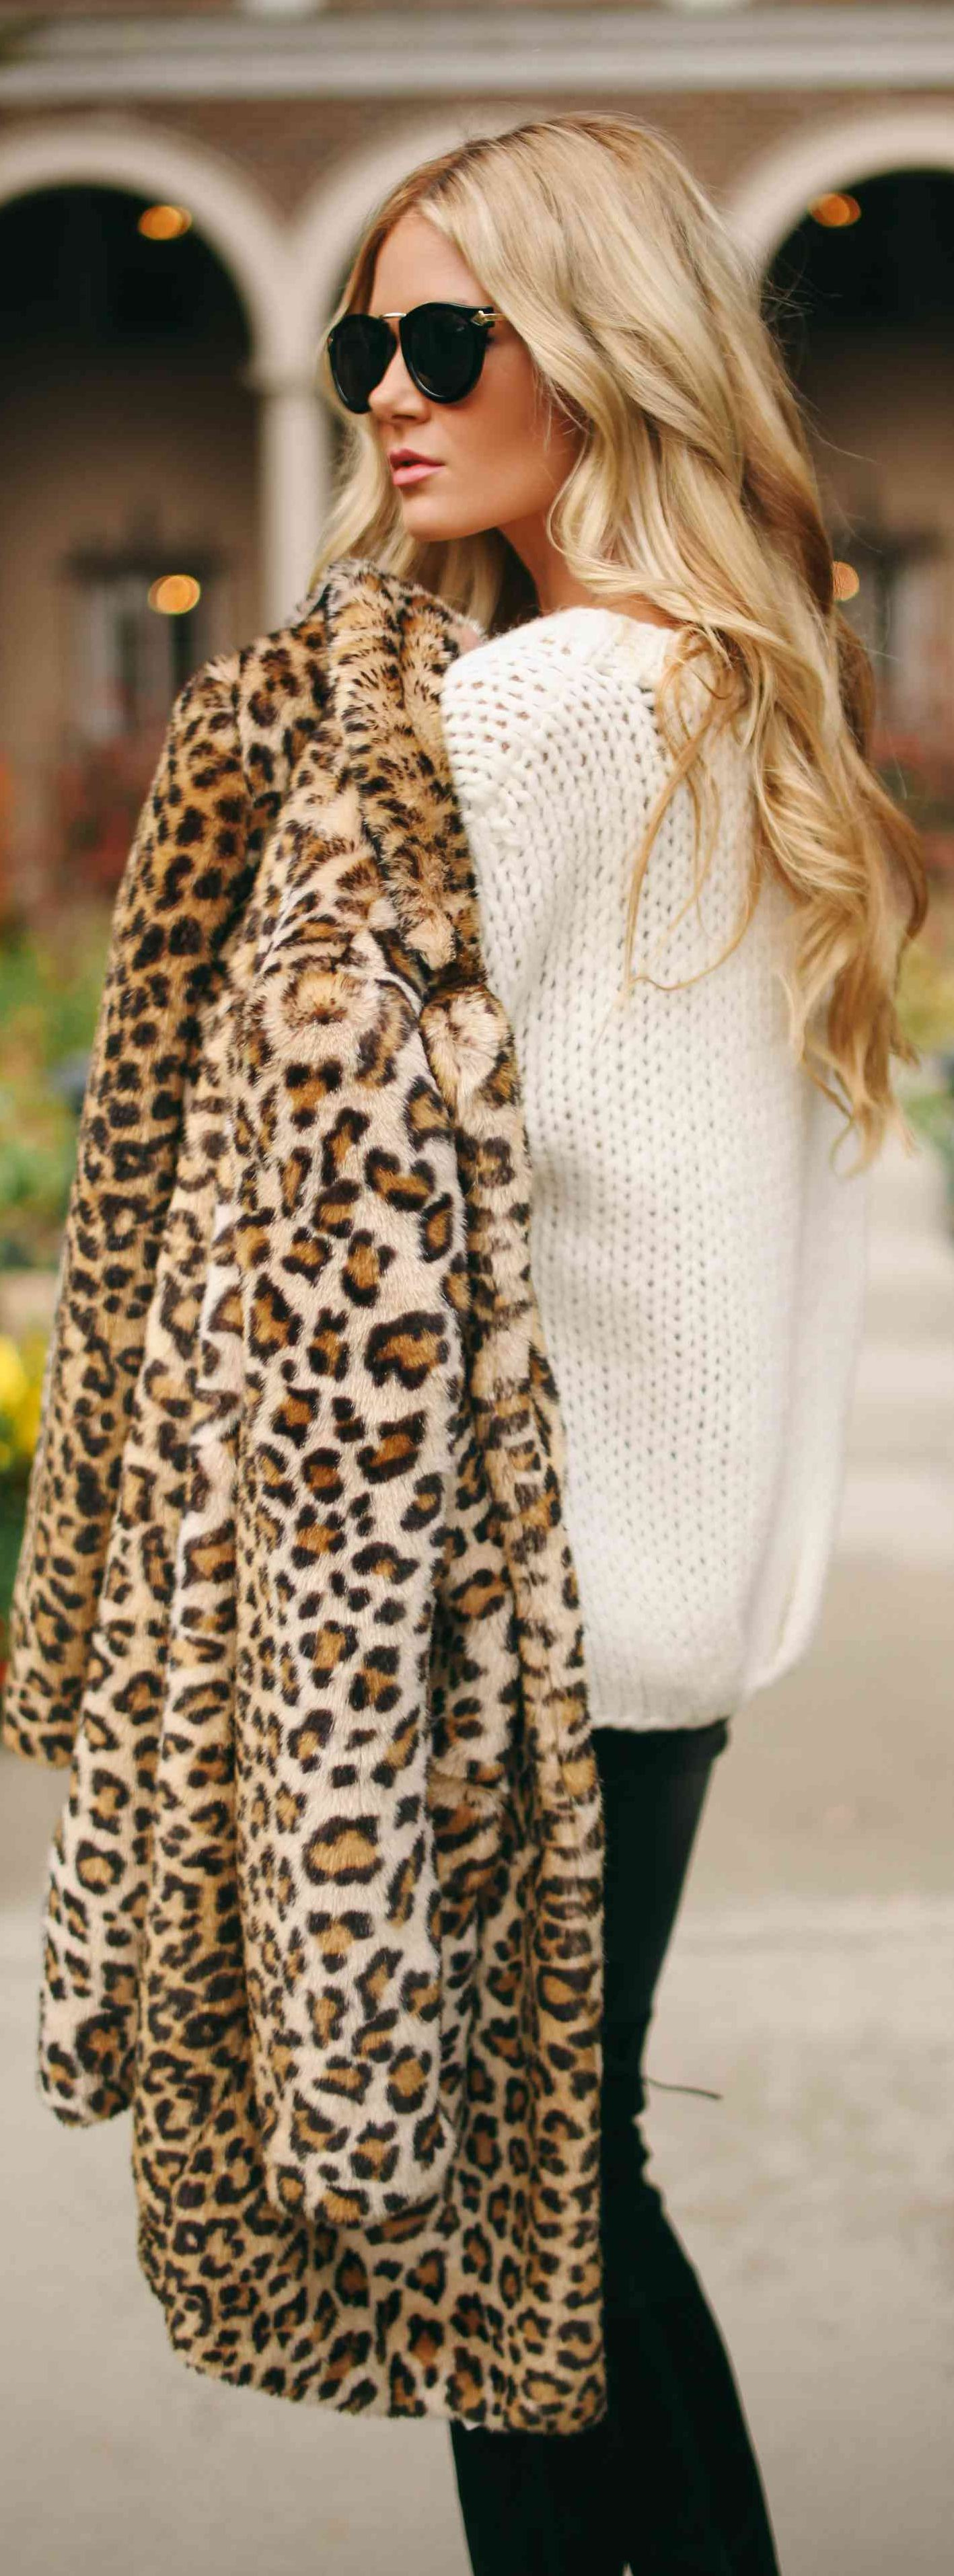 Street Style Sweater And Leopard Prints Fur Coat